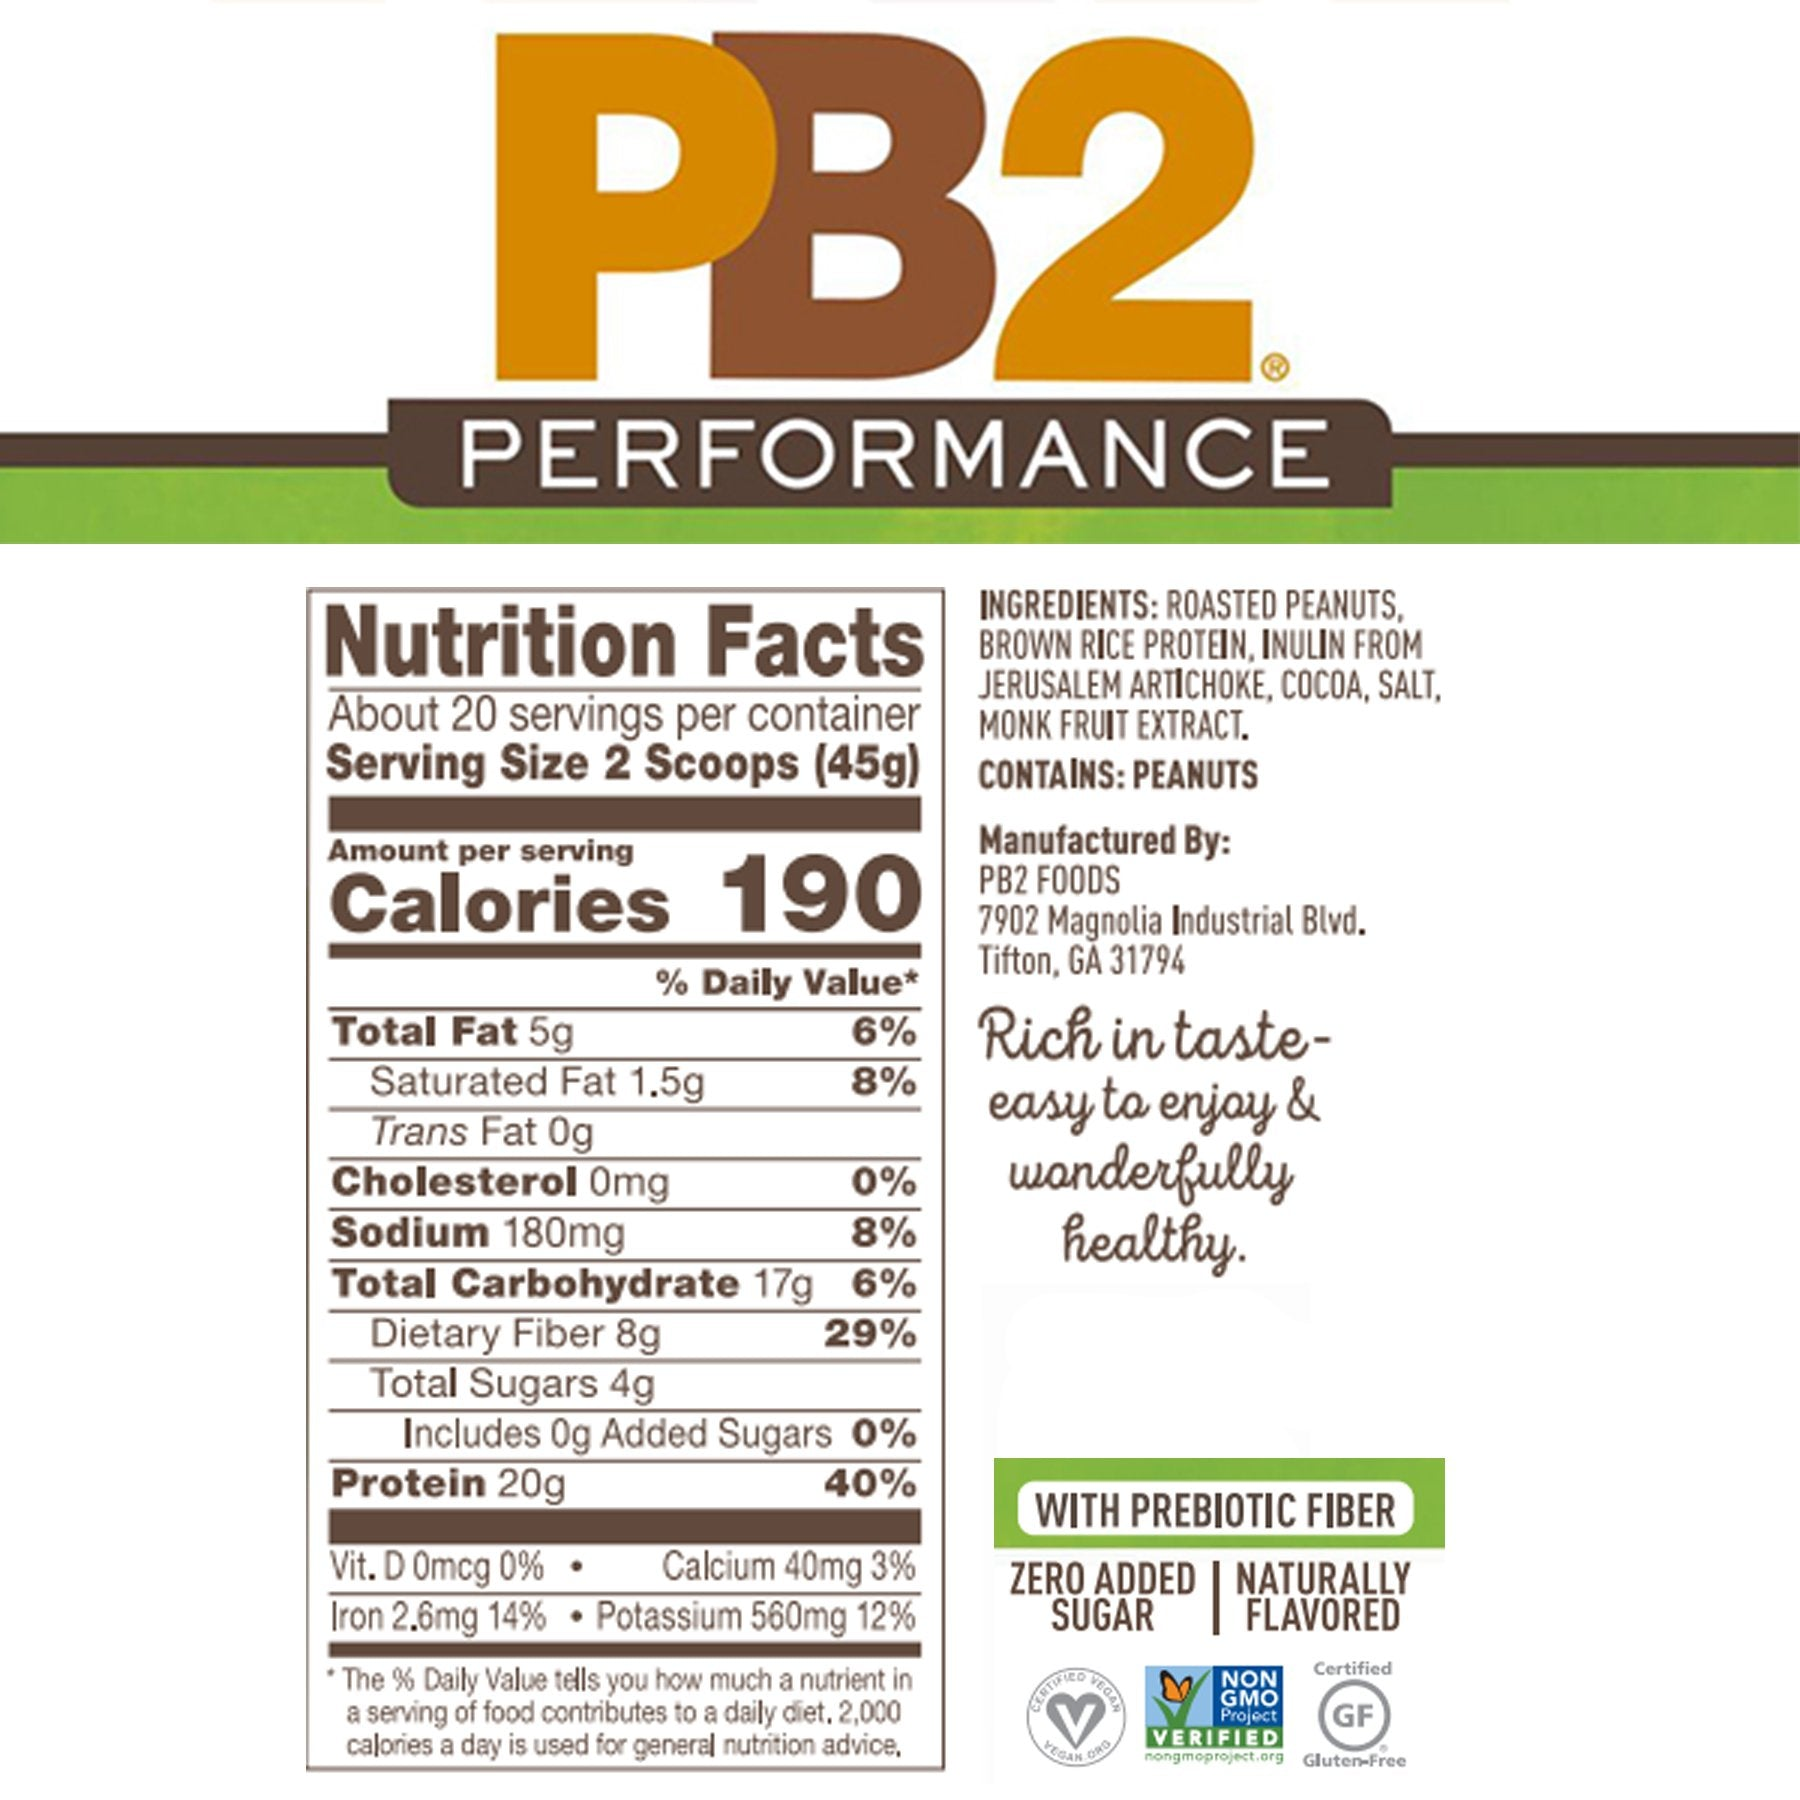 Nutrition Facts For PB2 Performance Peanut Protein